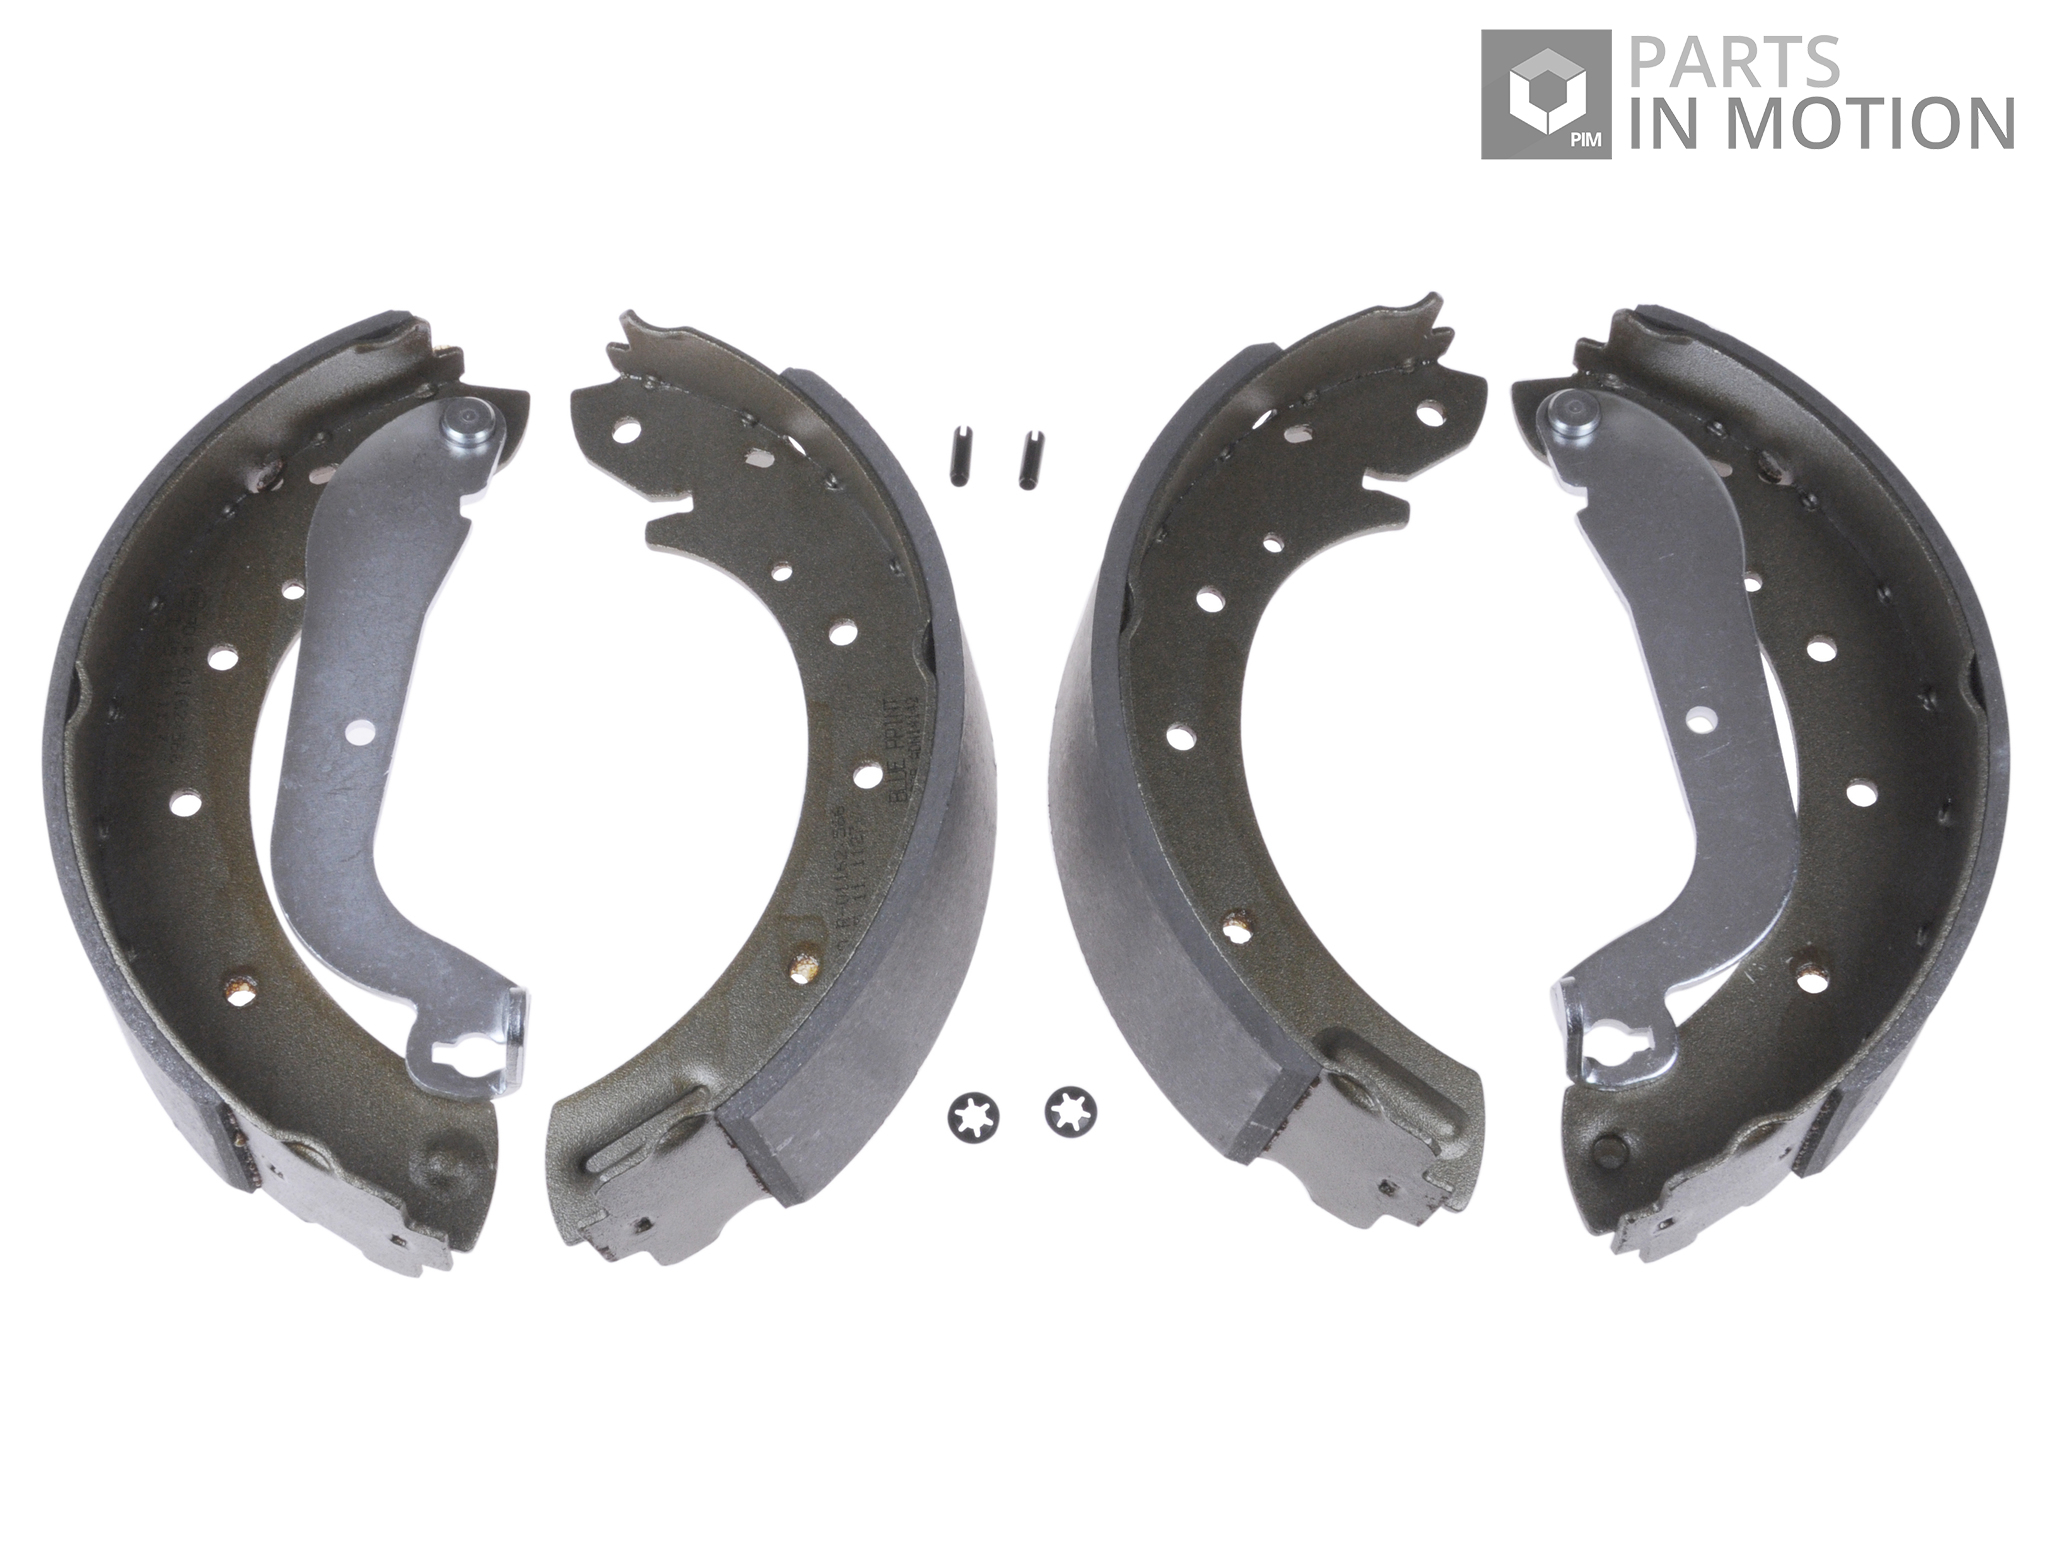 Brake Shoe Thickness In 32nds : Blue print brake shoes rear adn